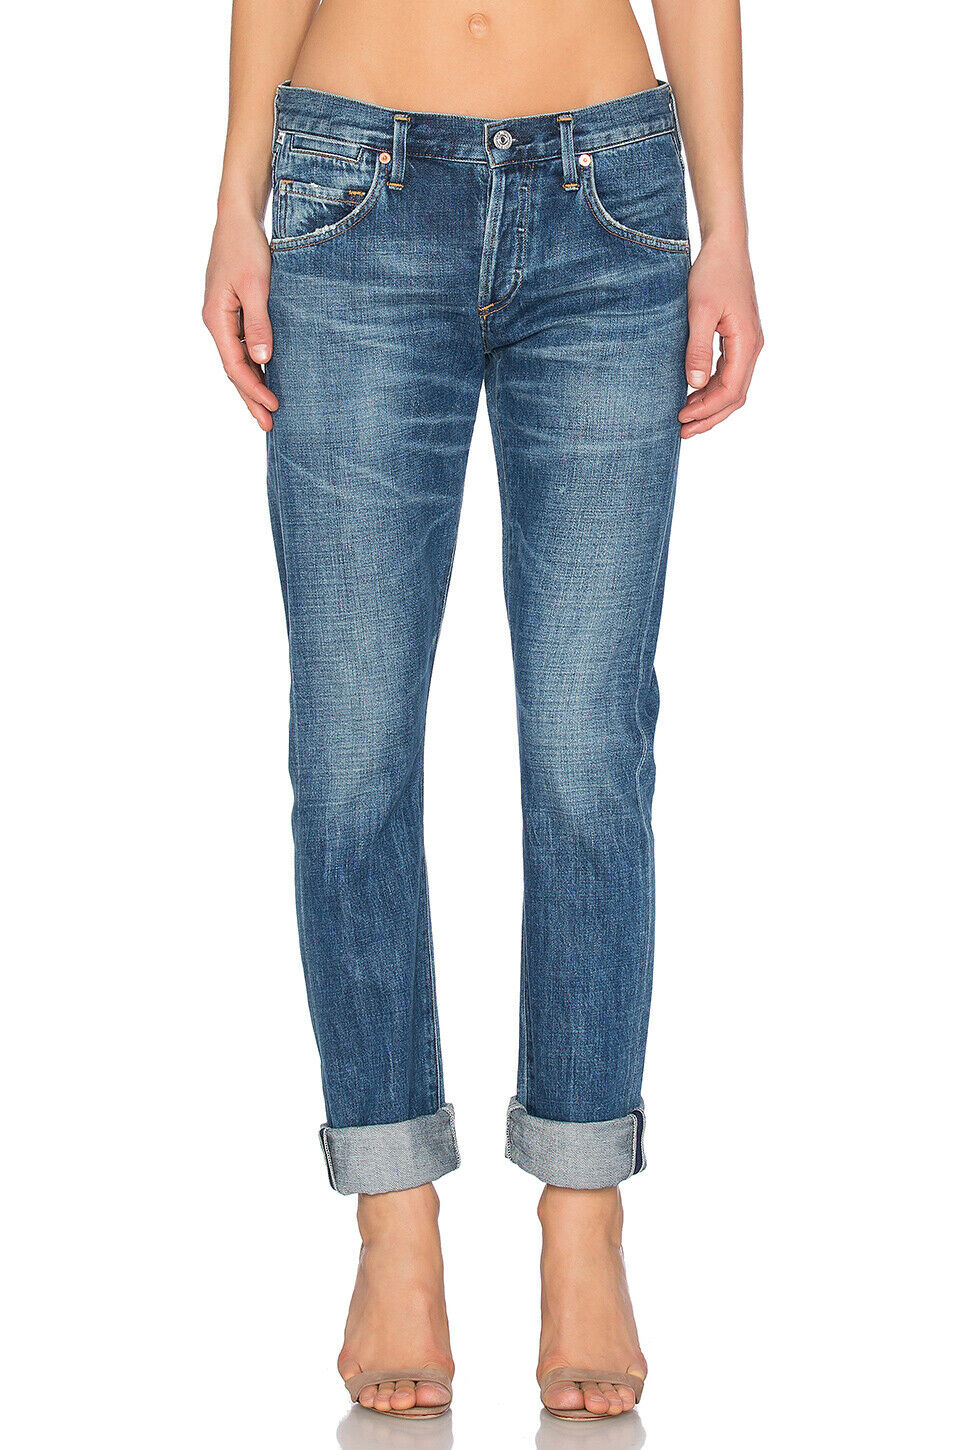 Citizens of Humanity Premium Vintage Emerson Long Jeans in Anberlin; 25